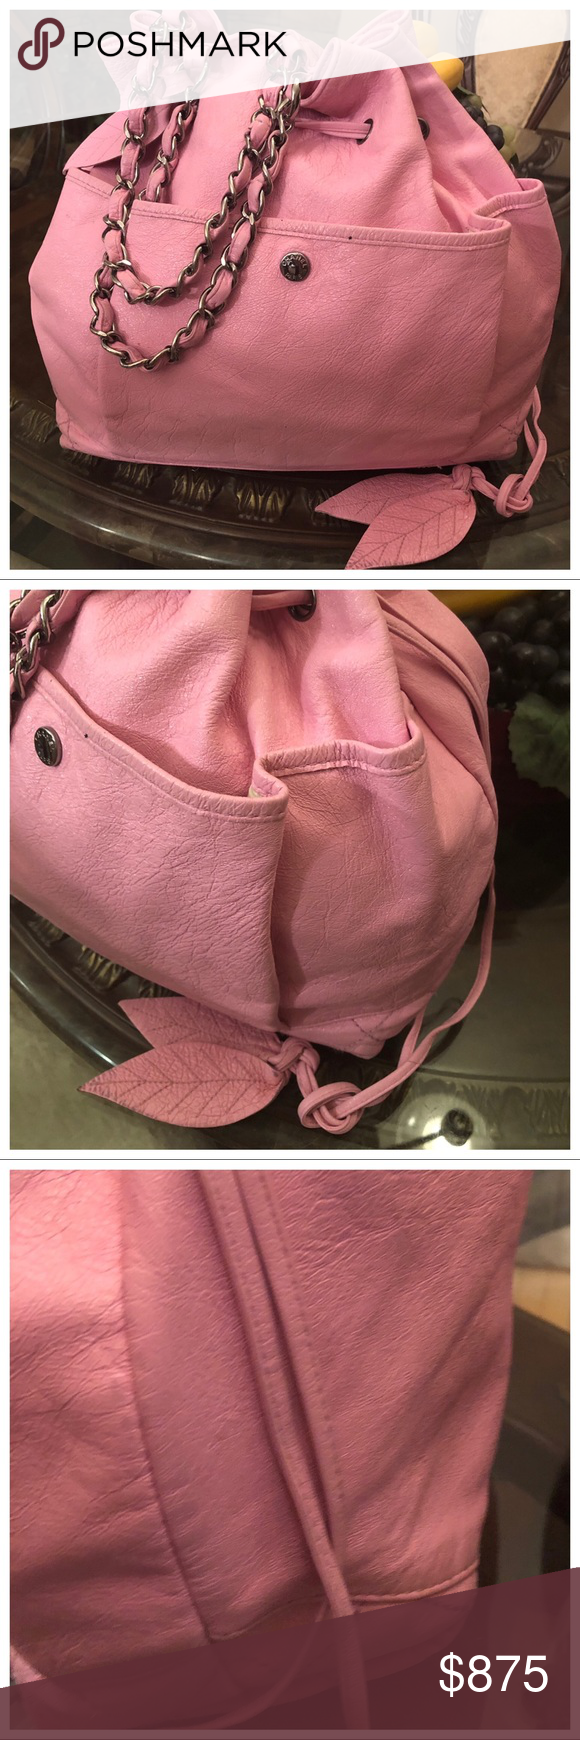 a12aa891bb9234 Authentic Chanel Bag listing #1 Pink Chanel. Has a draw string cinch to